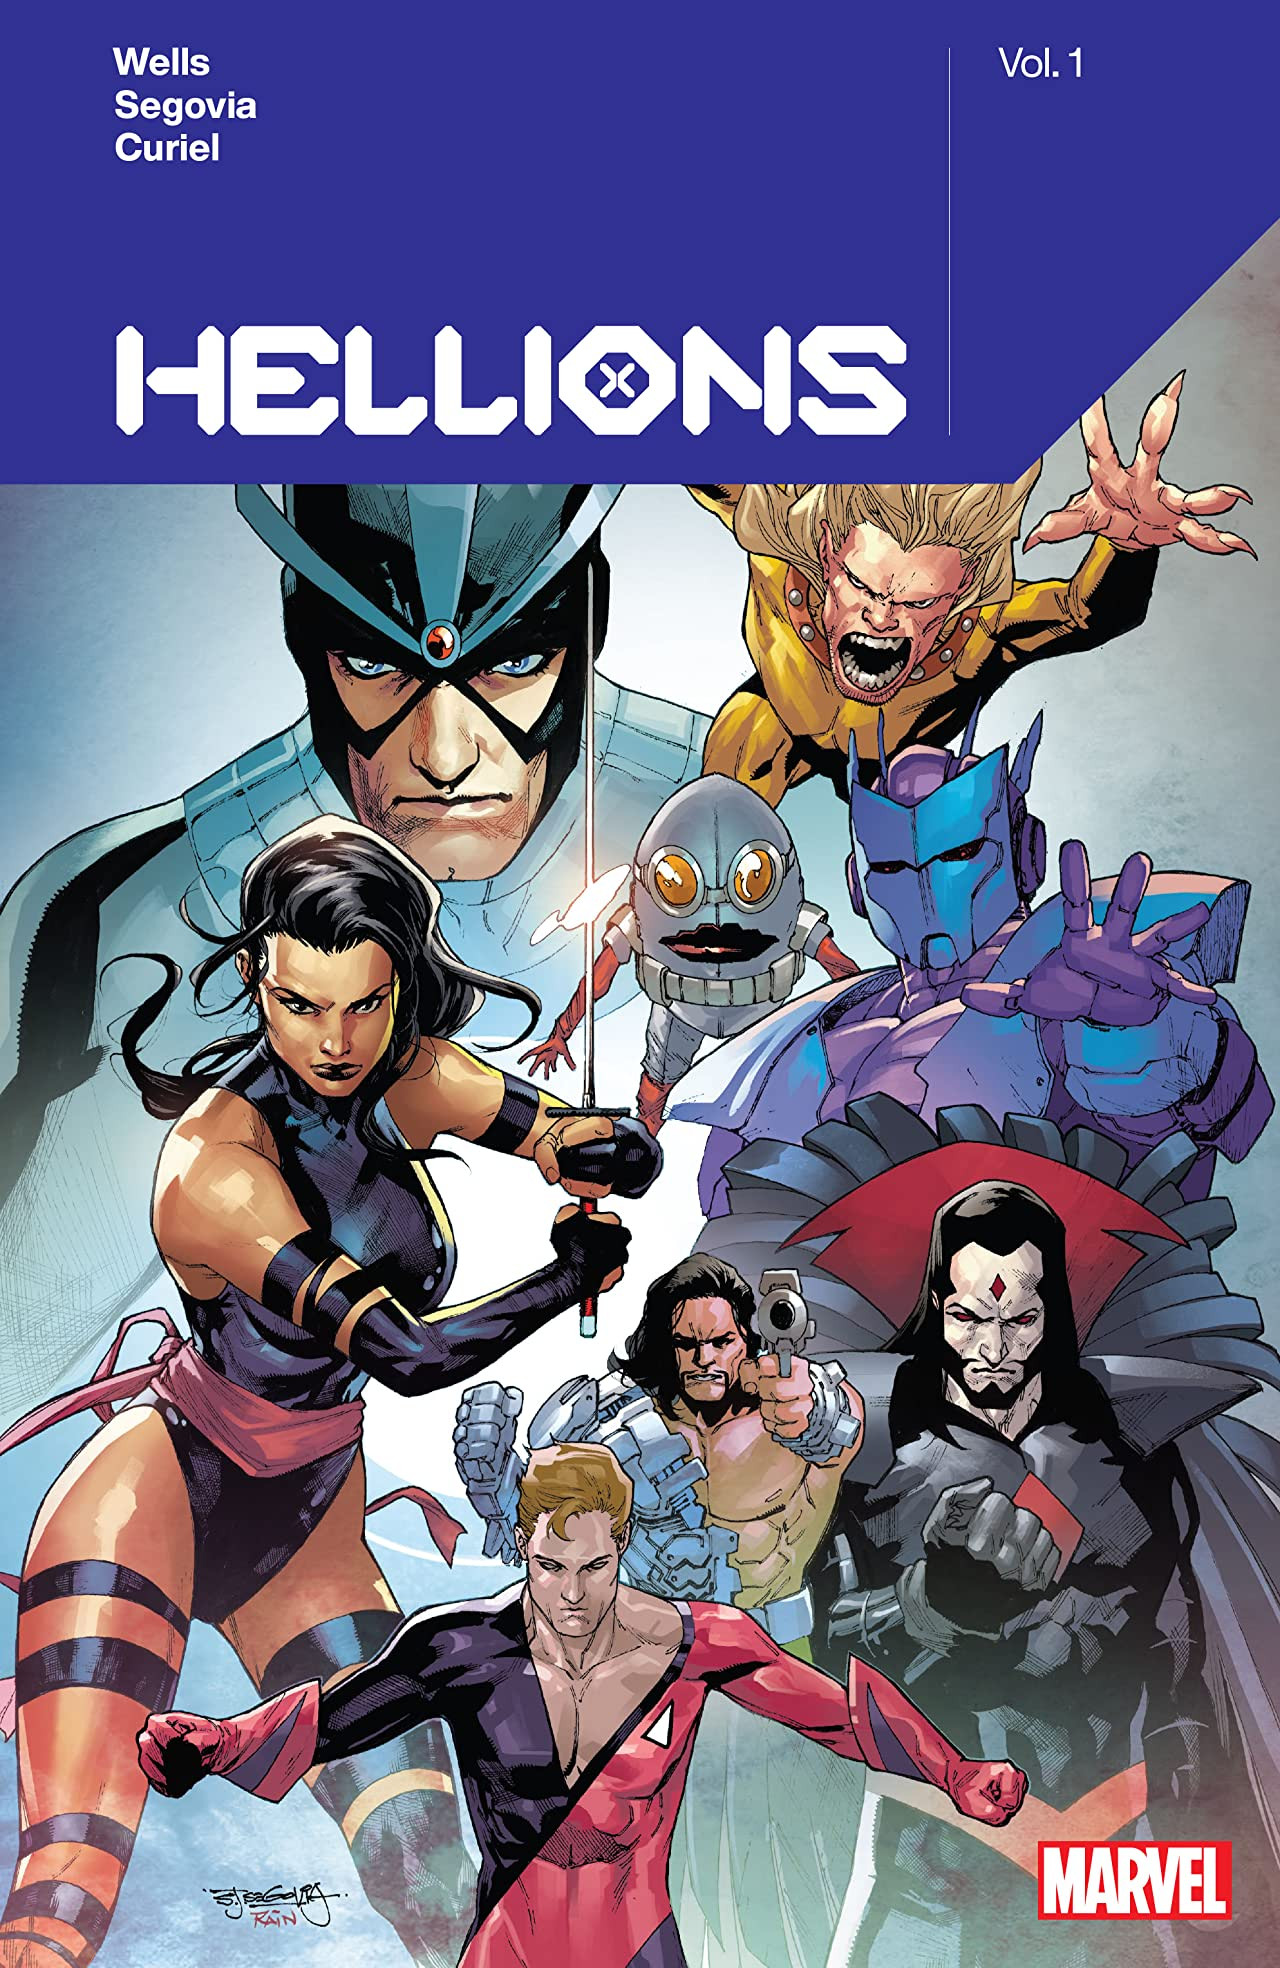 Hellions by Zeb Wells Vol 1